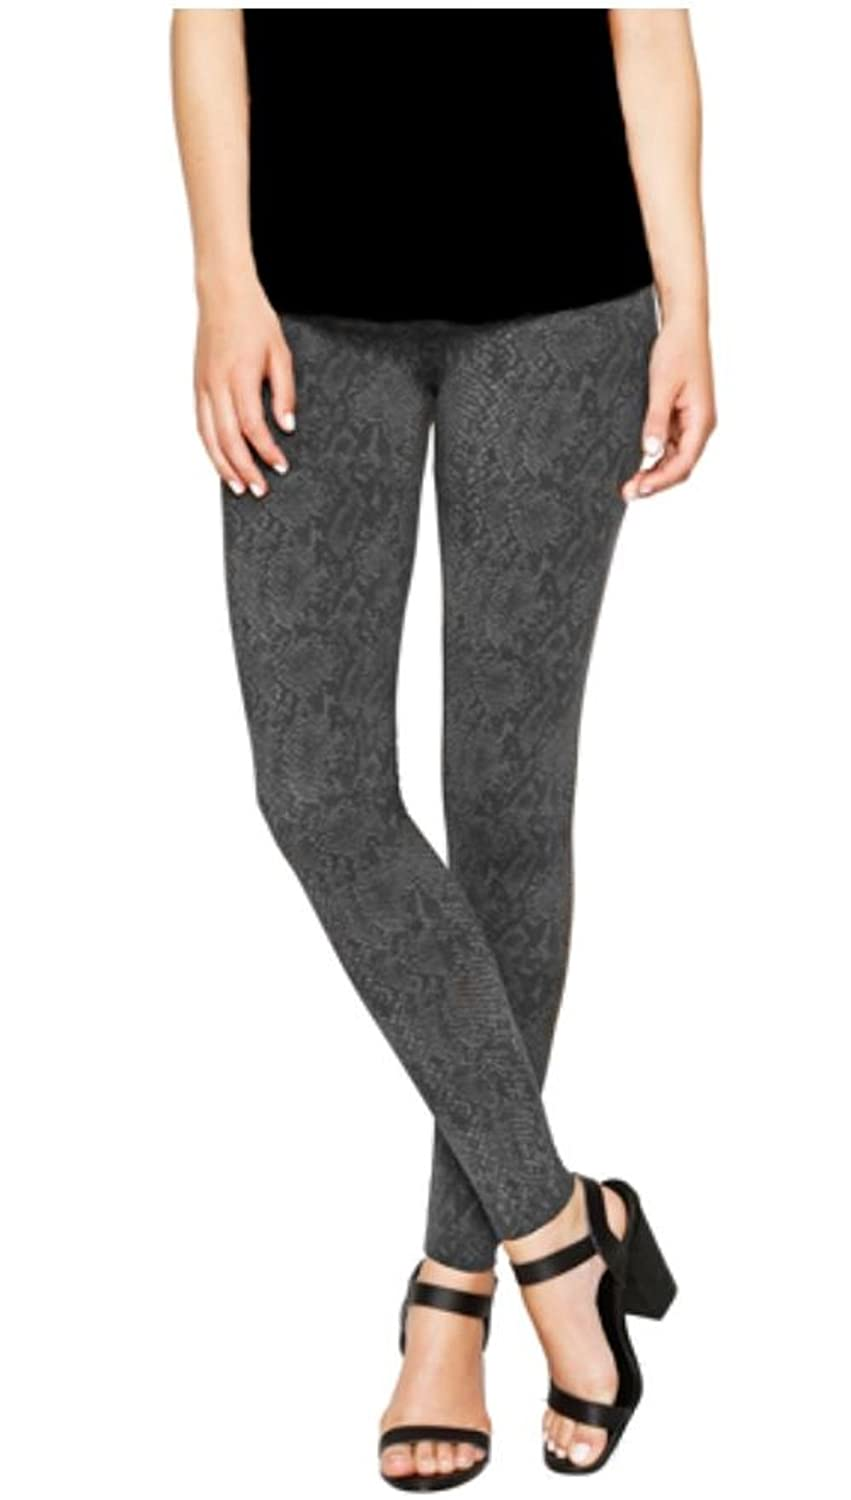 adfbc97dd0c4cc Matty M. Thick Material Leggings with Wide Elastic Band (Charcoal Print,  XX-Large) at Amazon Women's Clothing store: